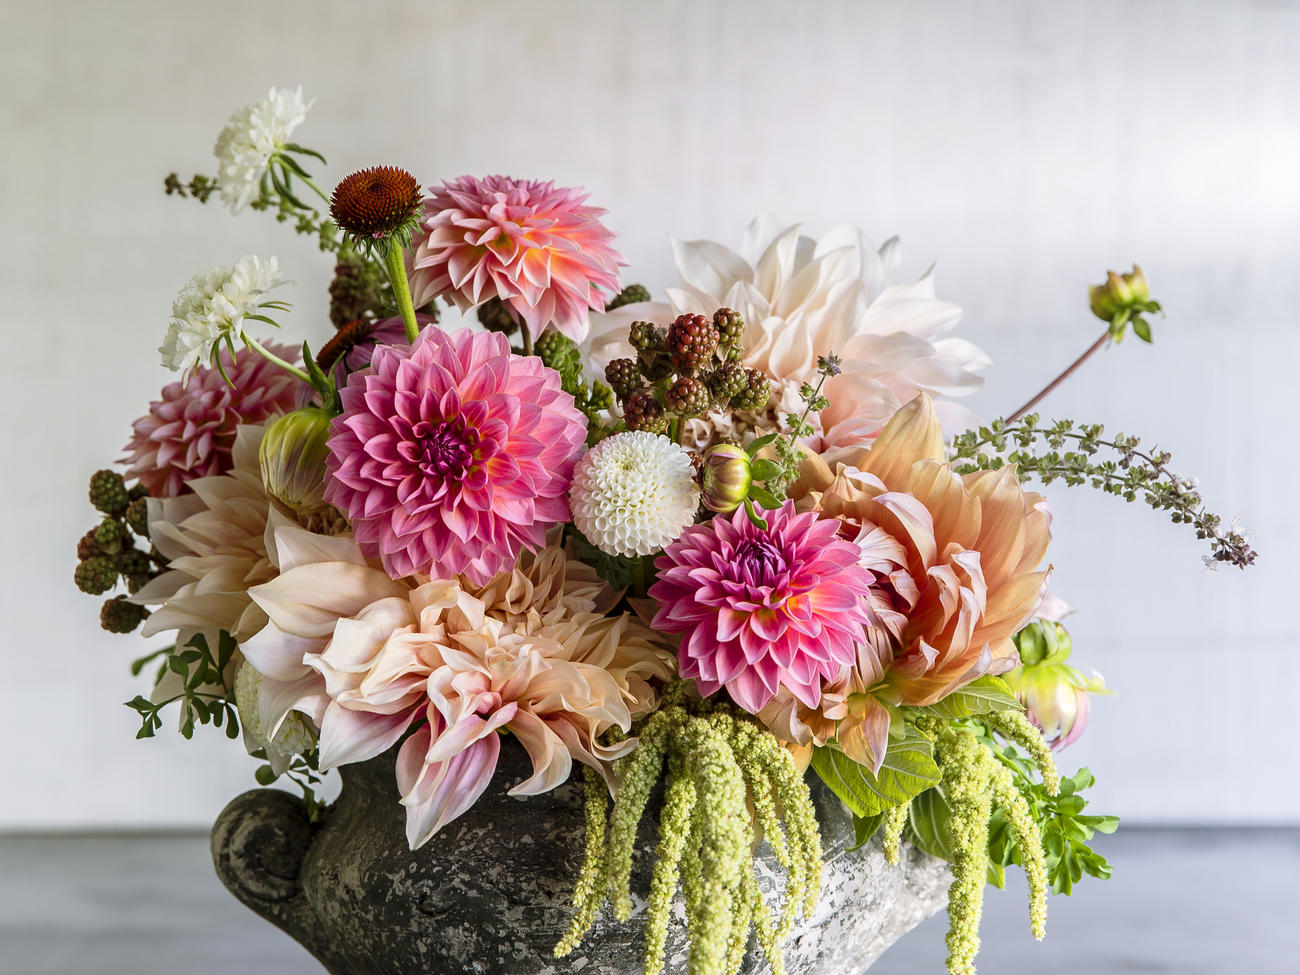 Guide to growing your own bouquet sunset magazine